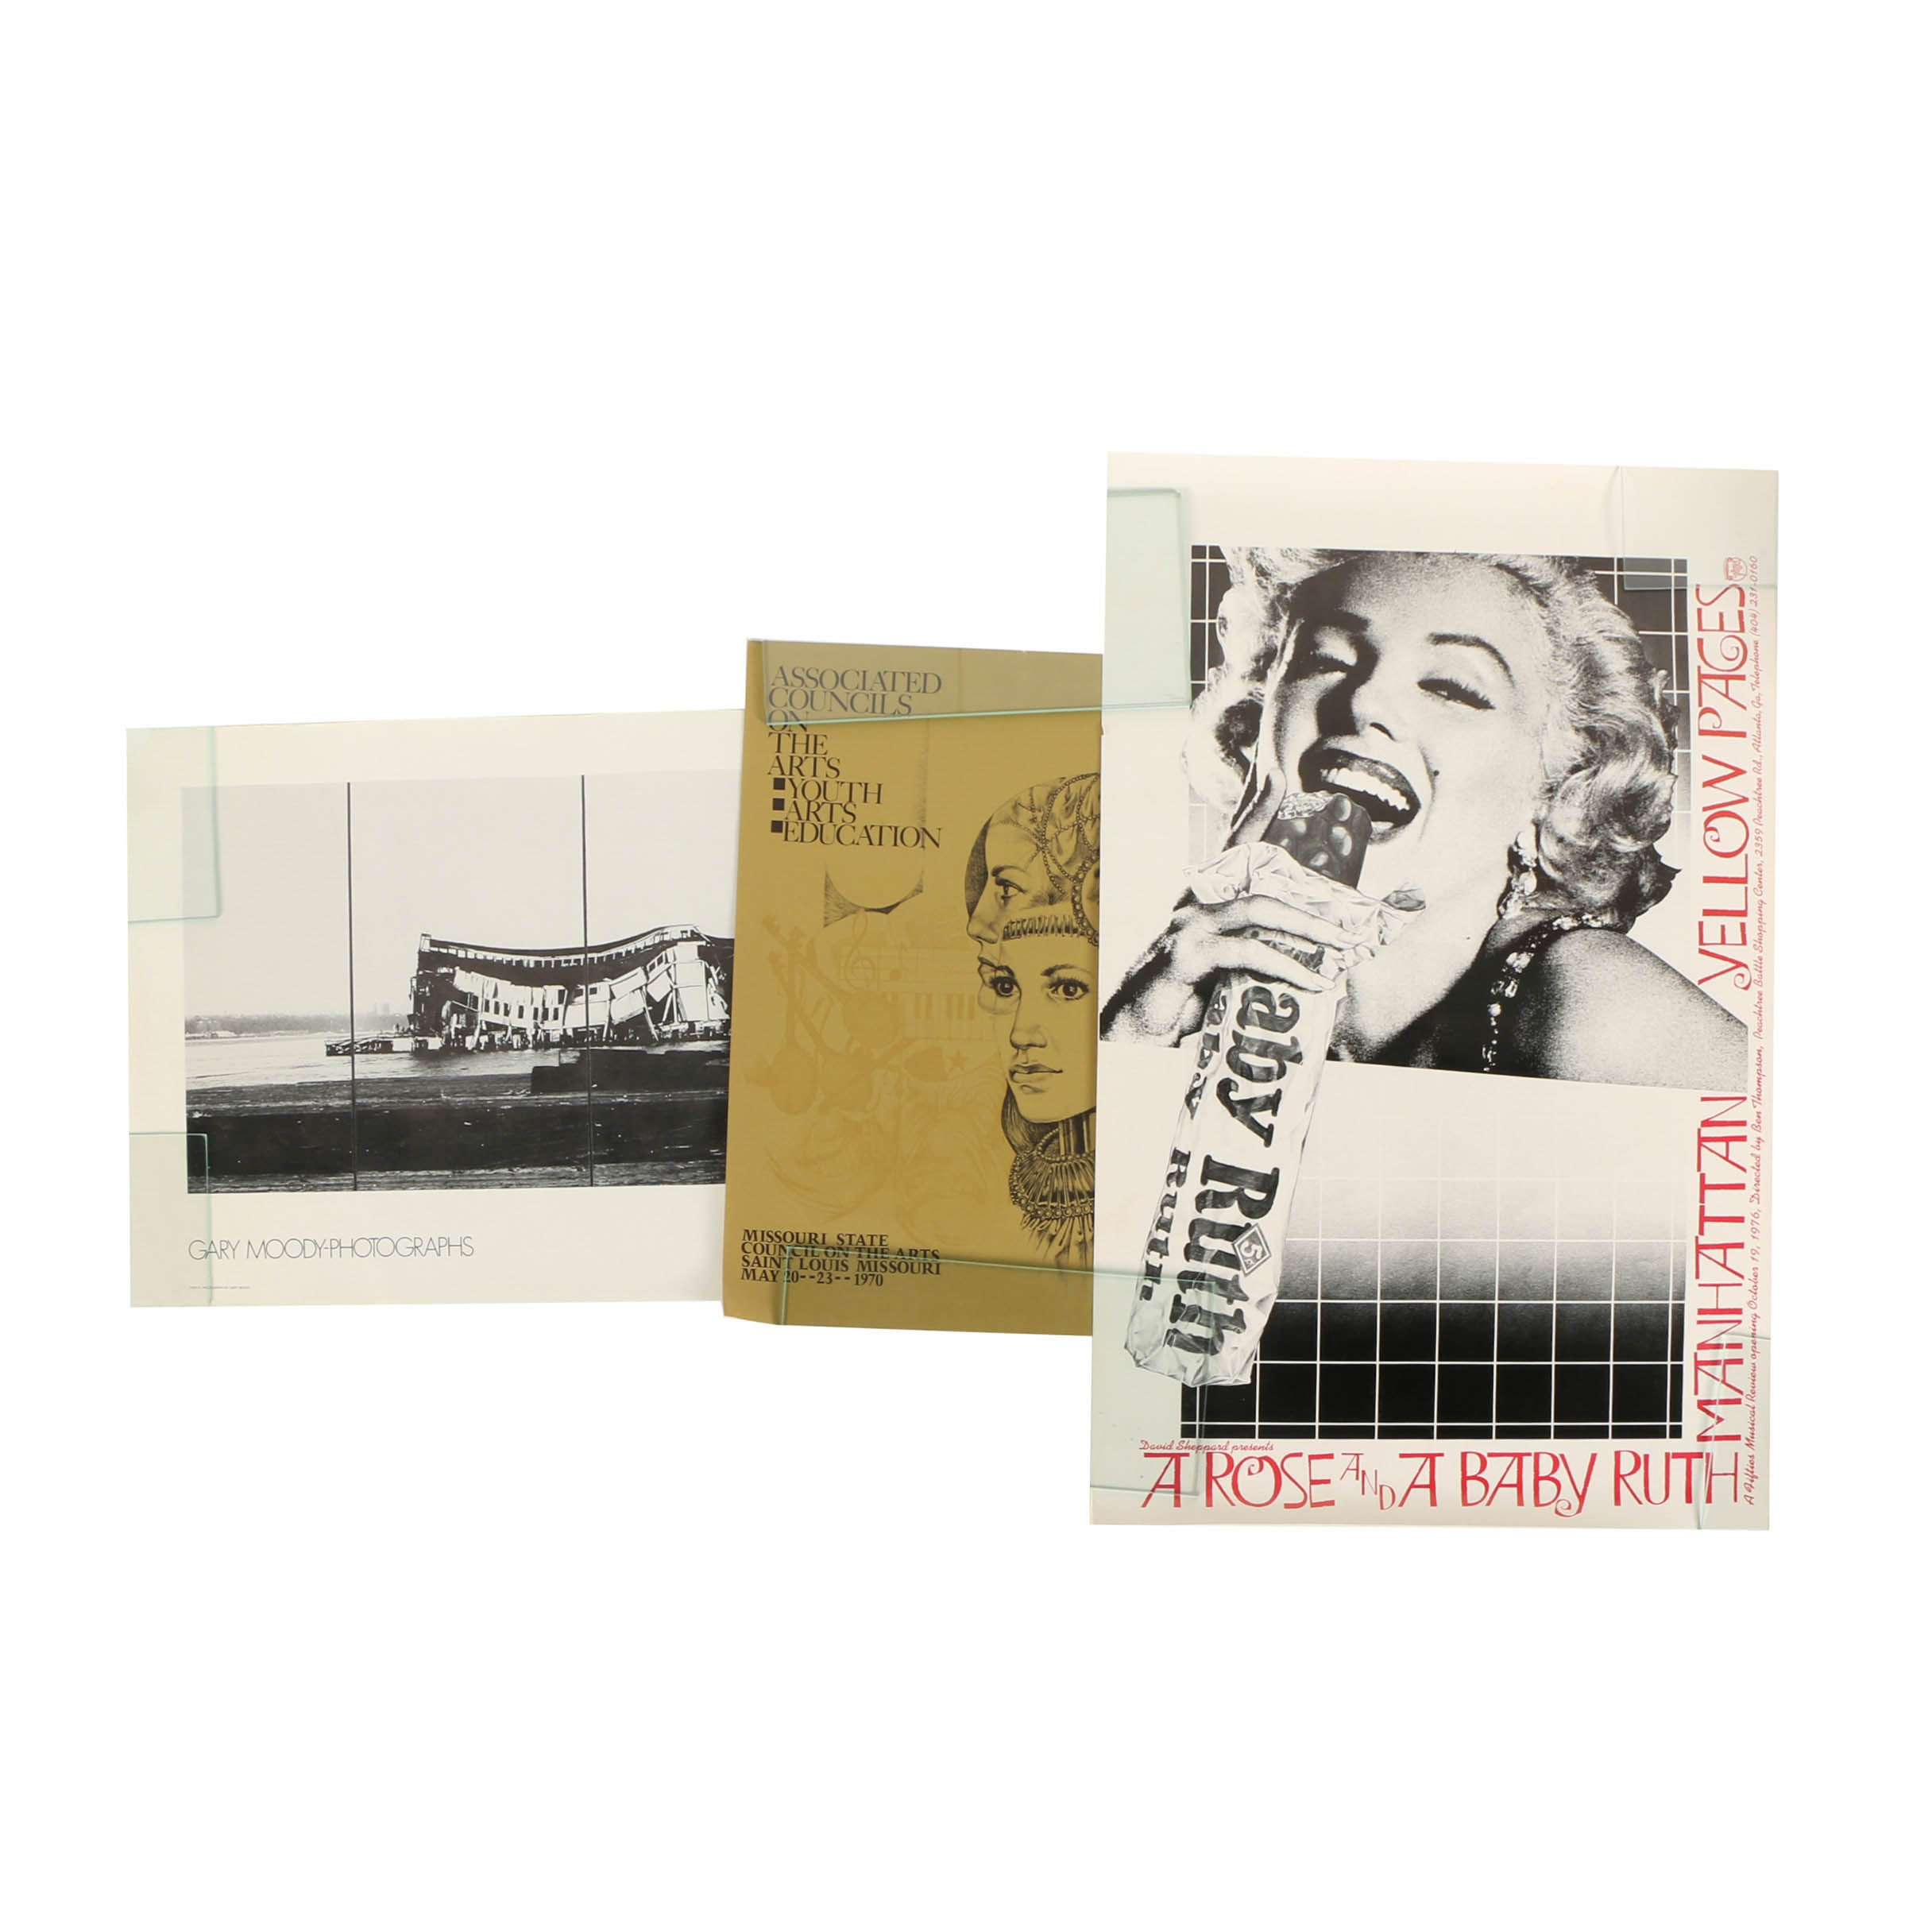 Halftone Prints on Paper of Art Exhibitions